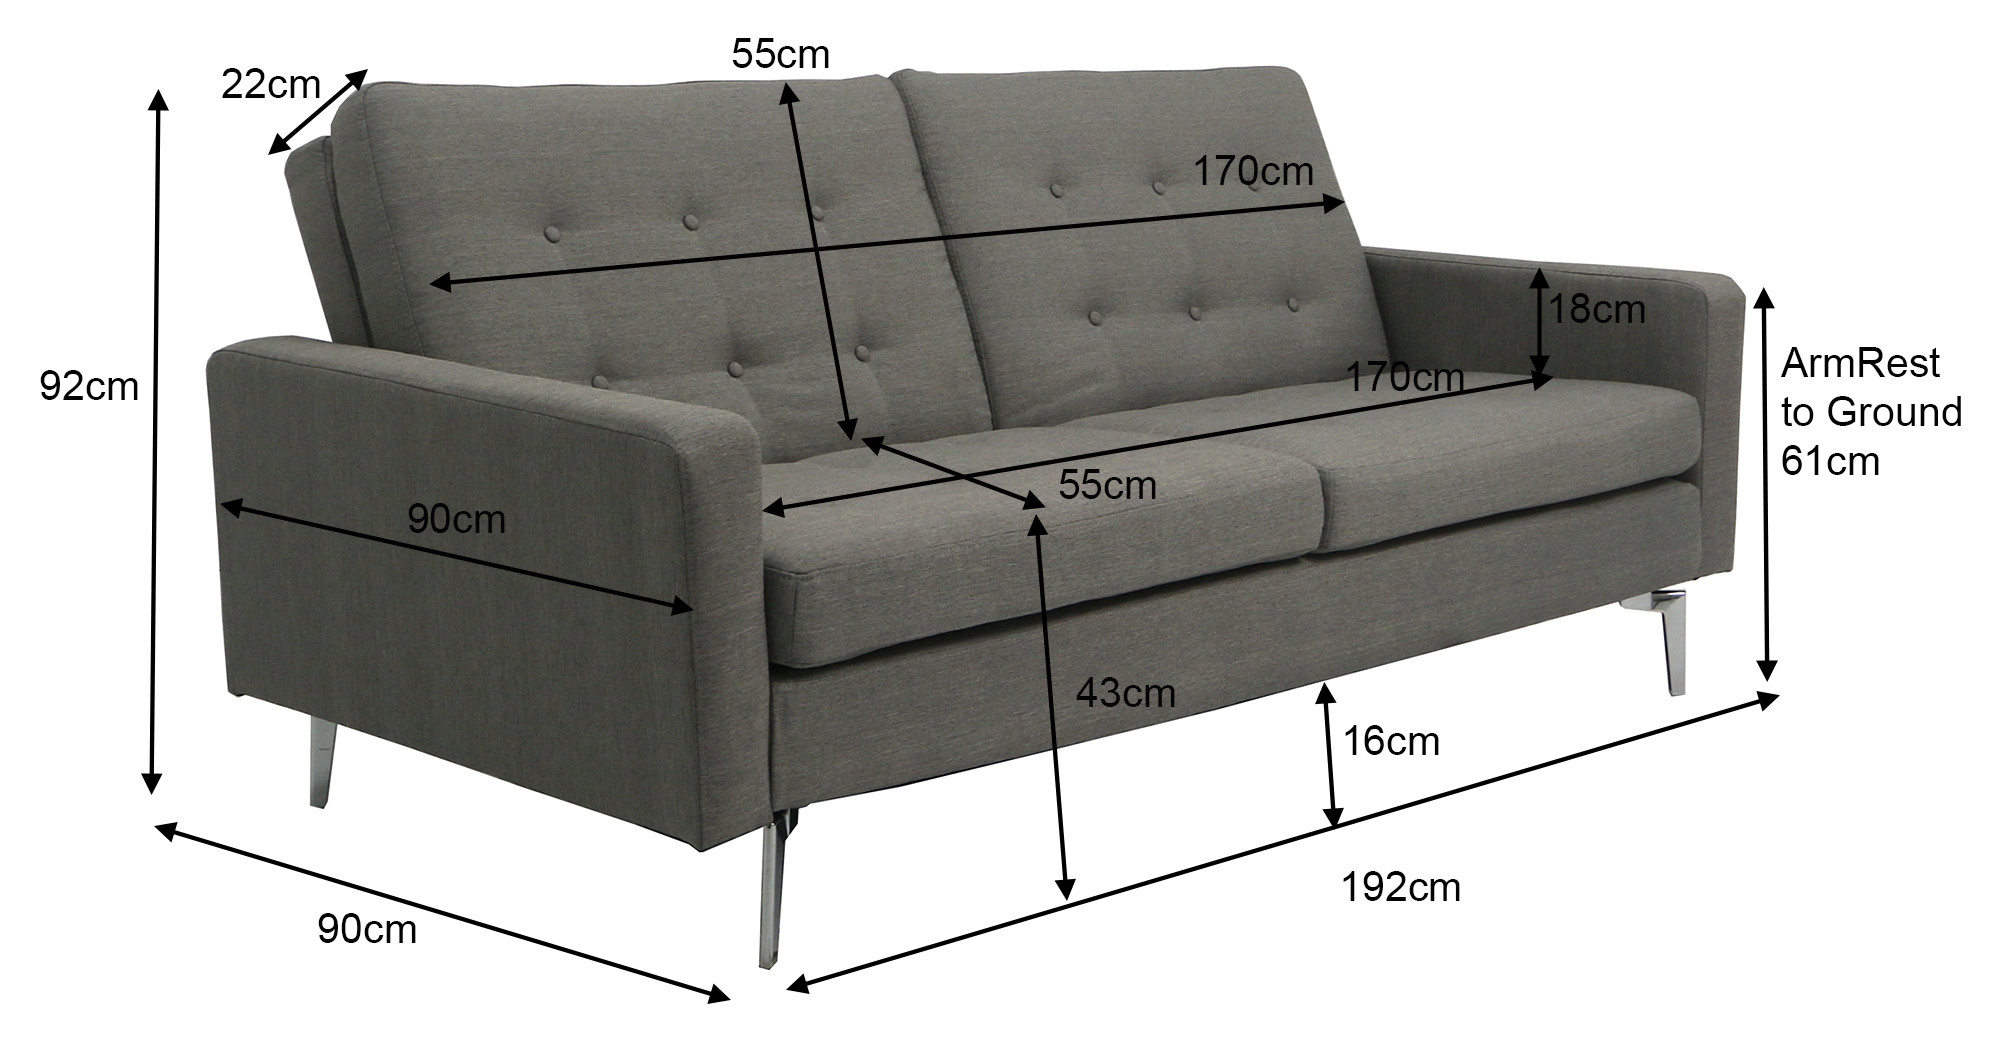 Dimensions of a 3 seater sofa for Sofa bed 3 seater uk